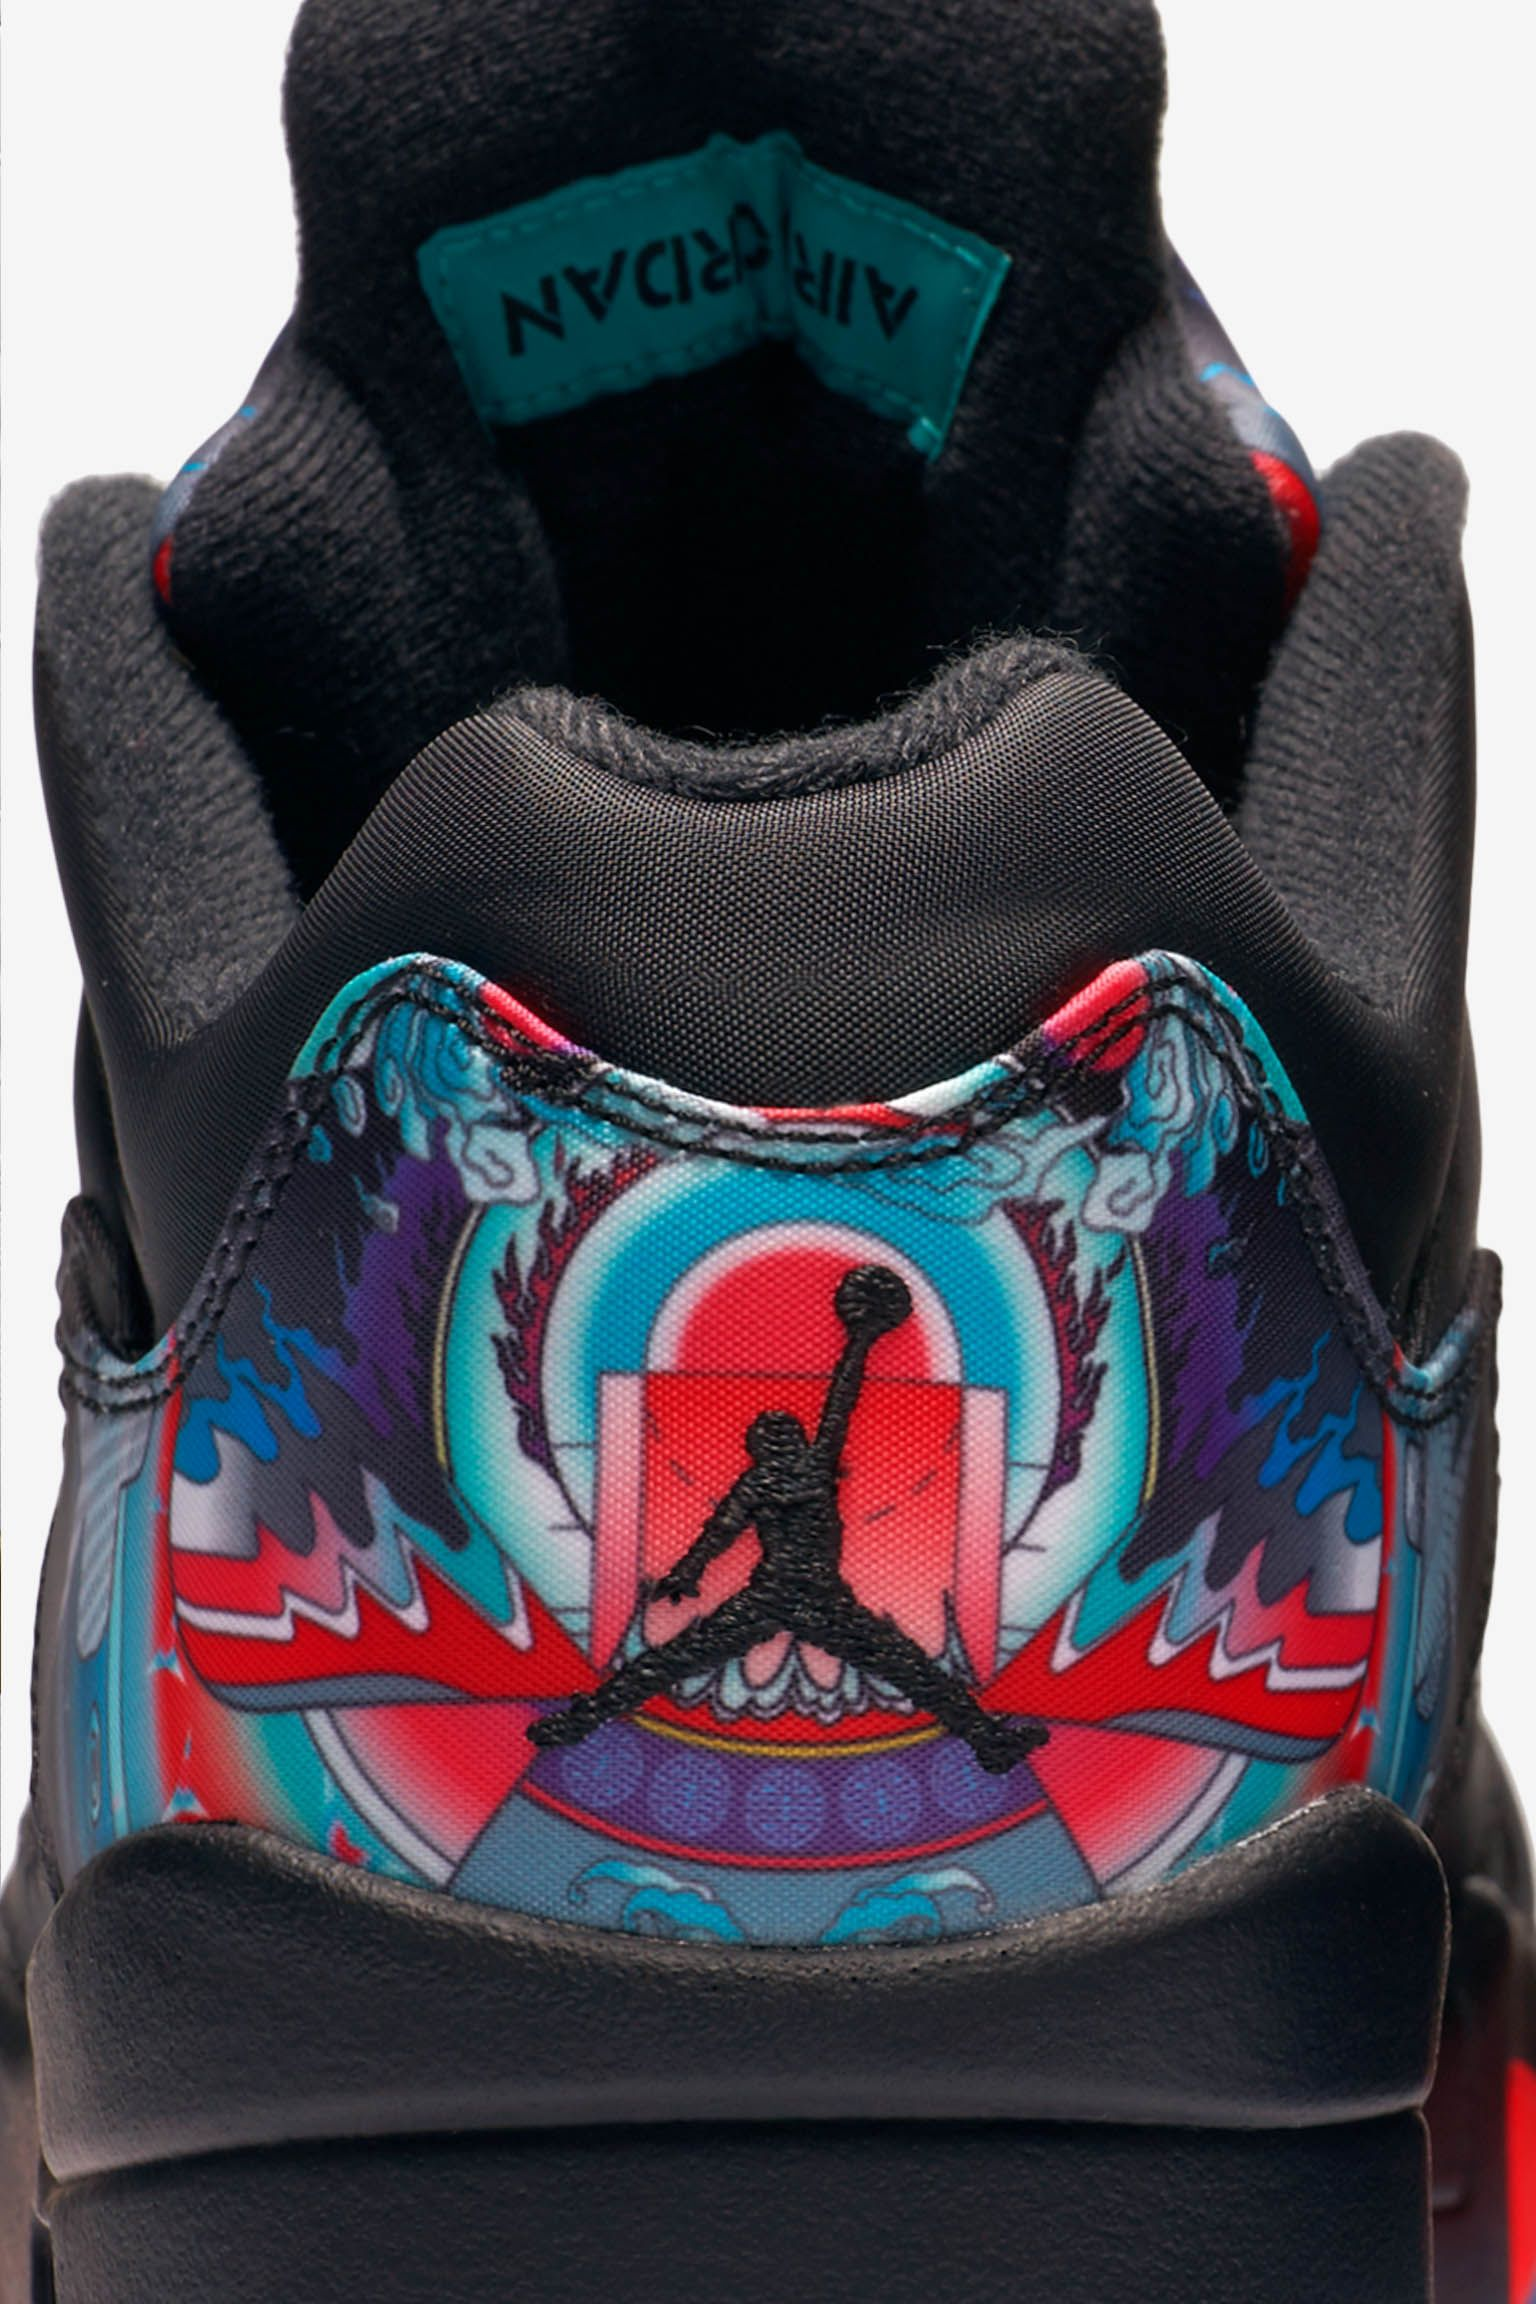 Air Jordan 5 Retro Low 'Chinese New Year' Release Date